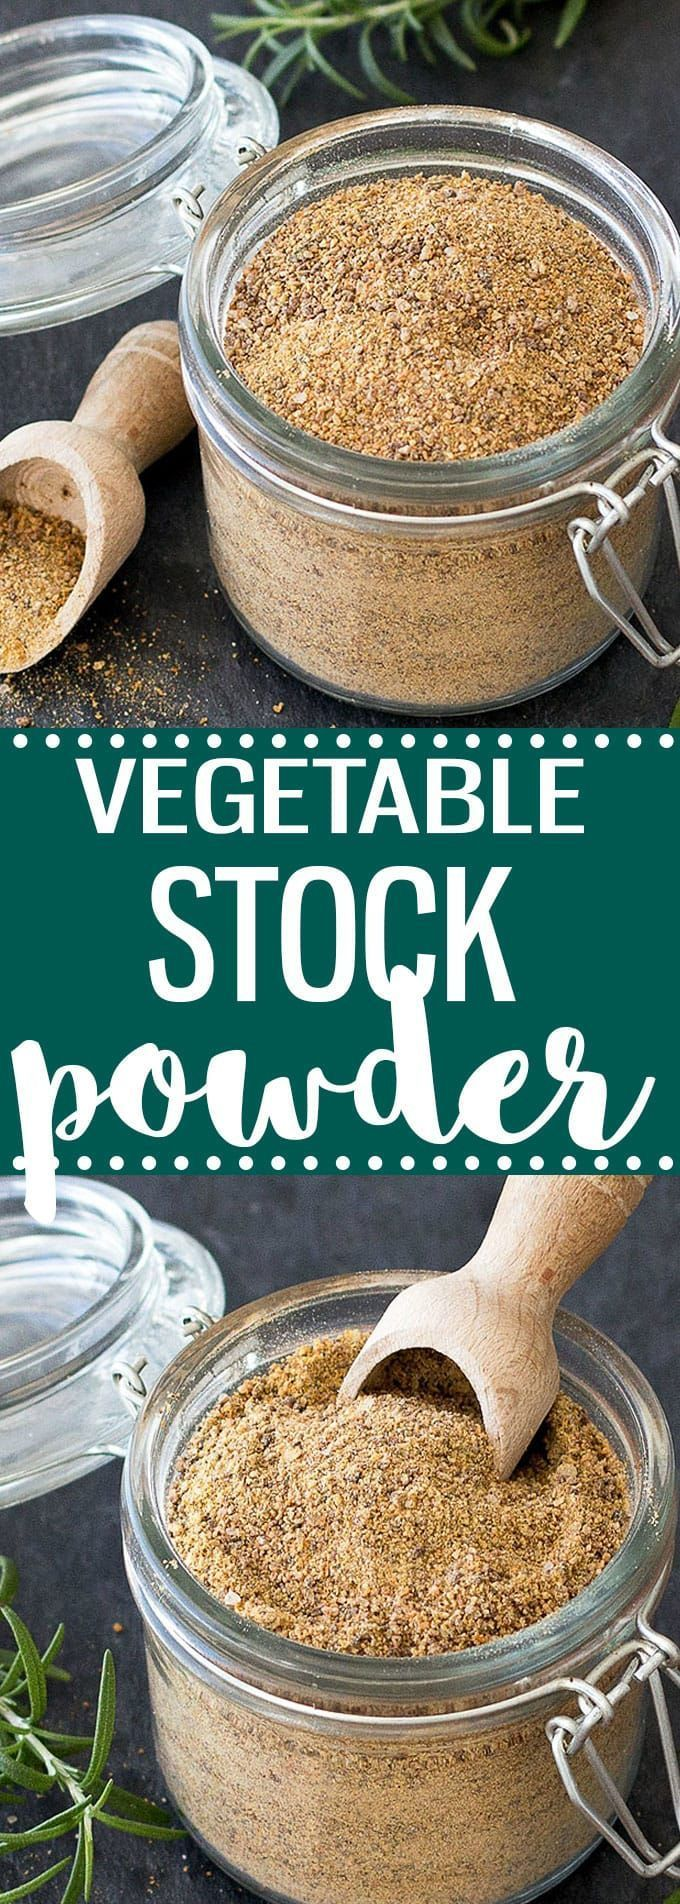 Homemade vegetable stock powder- easy to make and healthier than the store bough one. 100% natural, free of preservative and less sodium. #easyrecipe #homemade #vegetarian #vegan